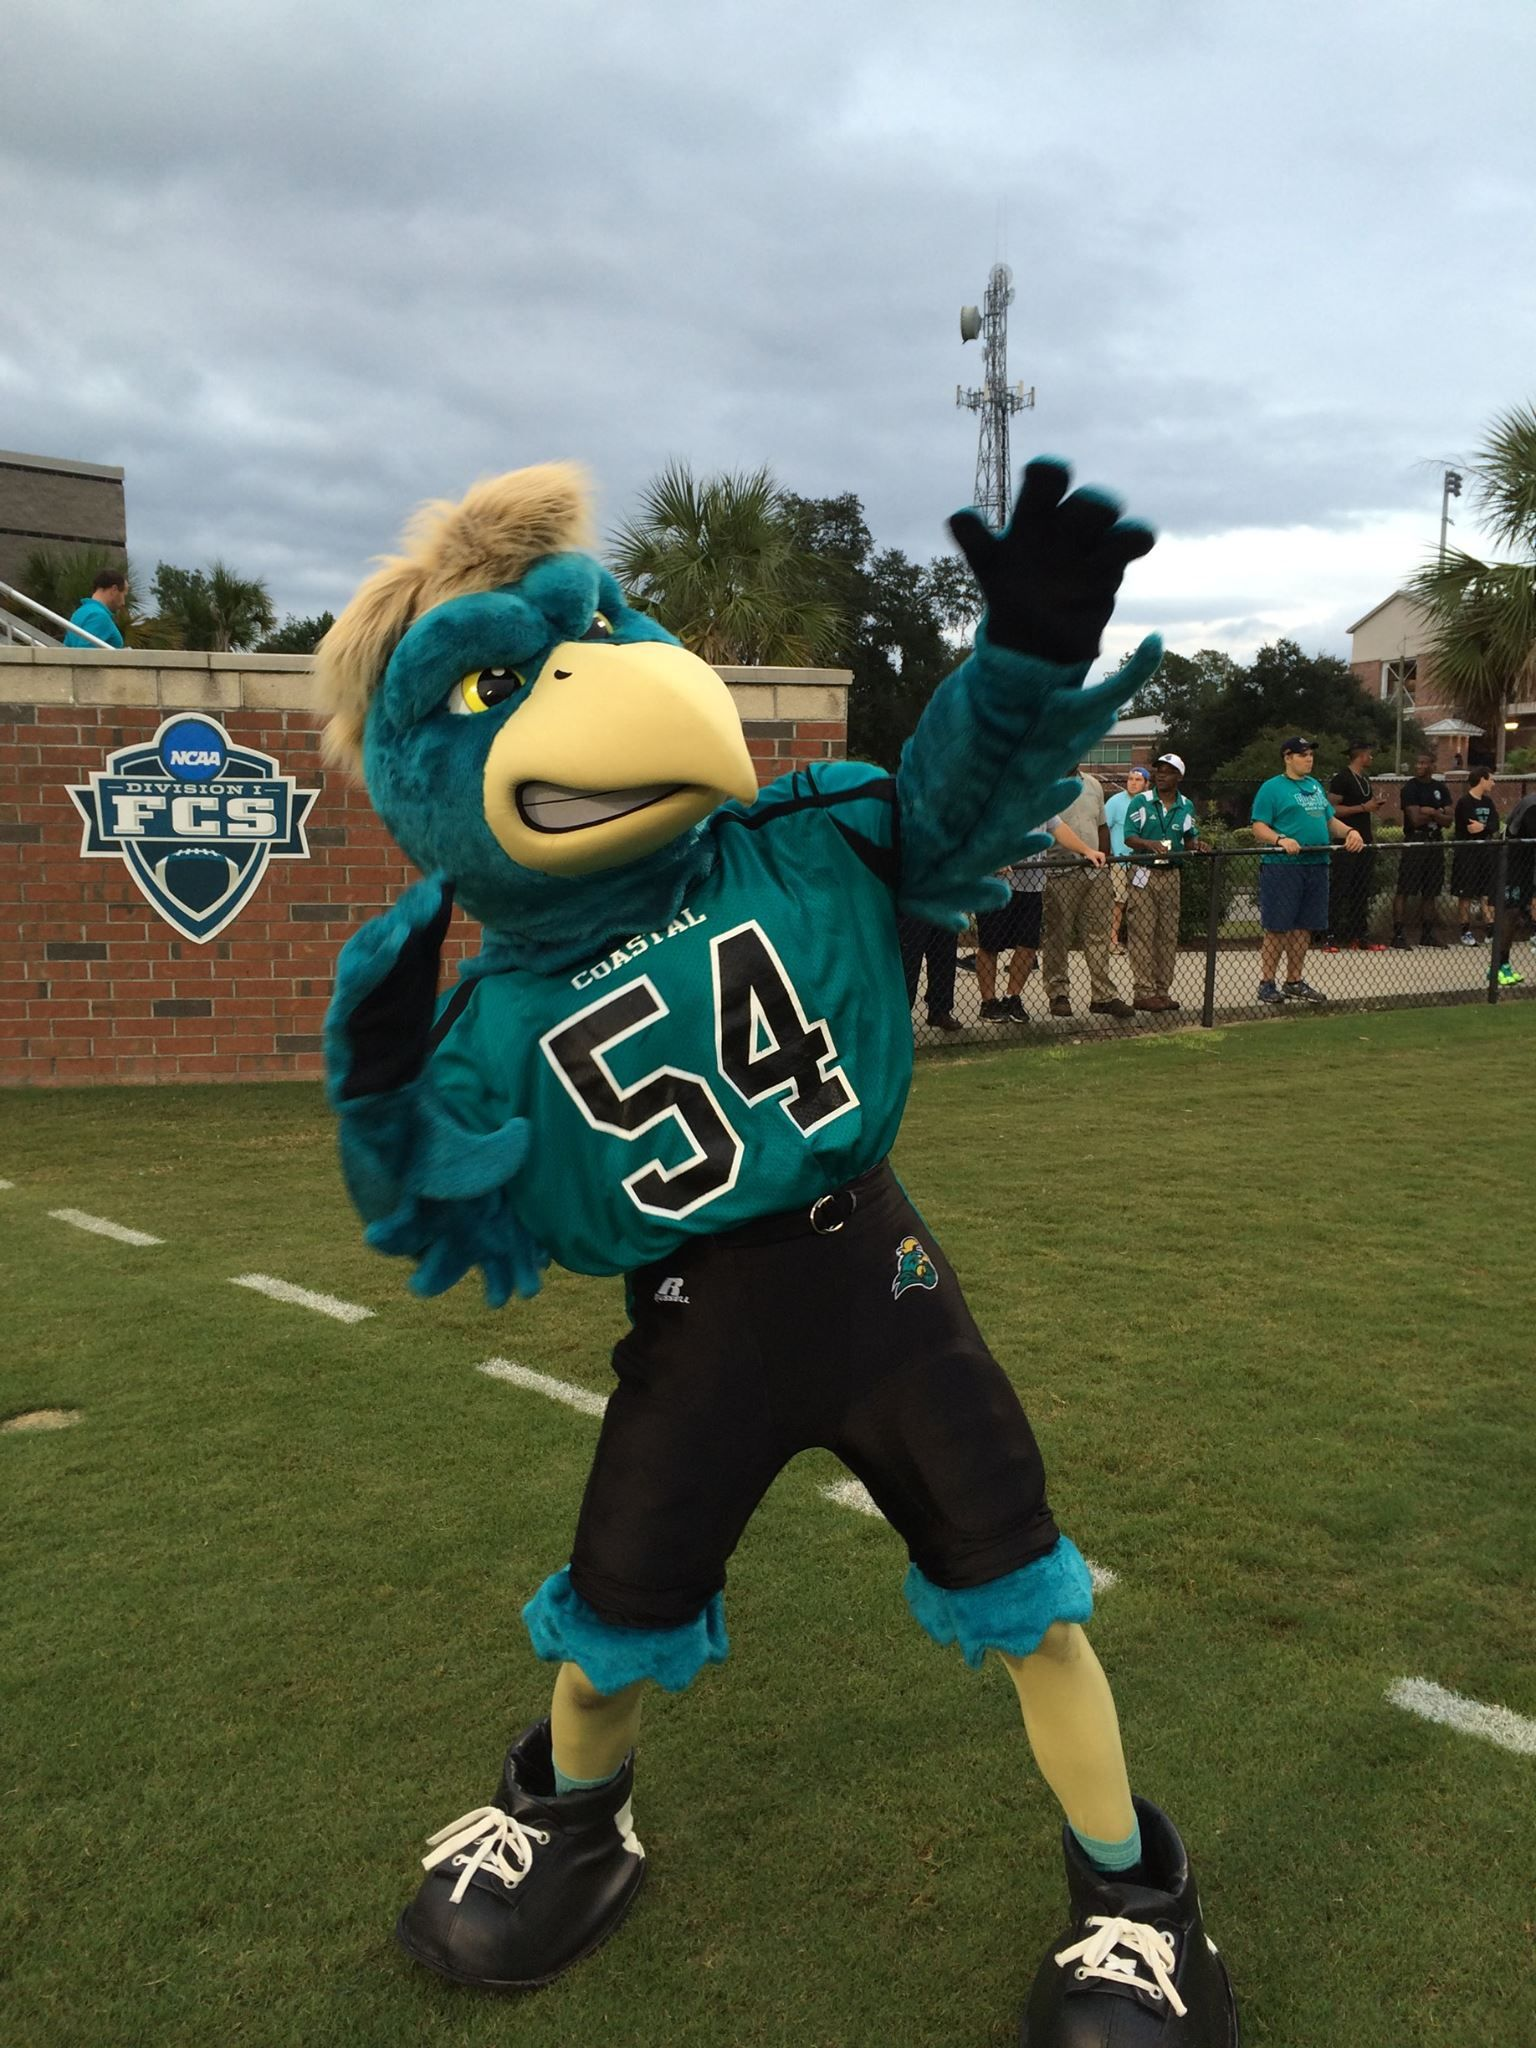 Chauncey living it up at the Coastal Carolina University